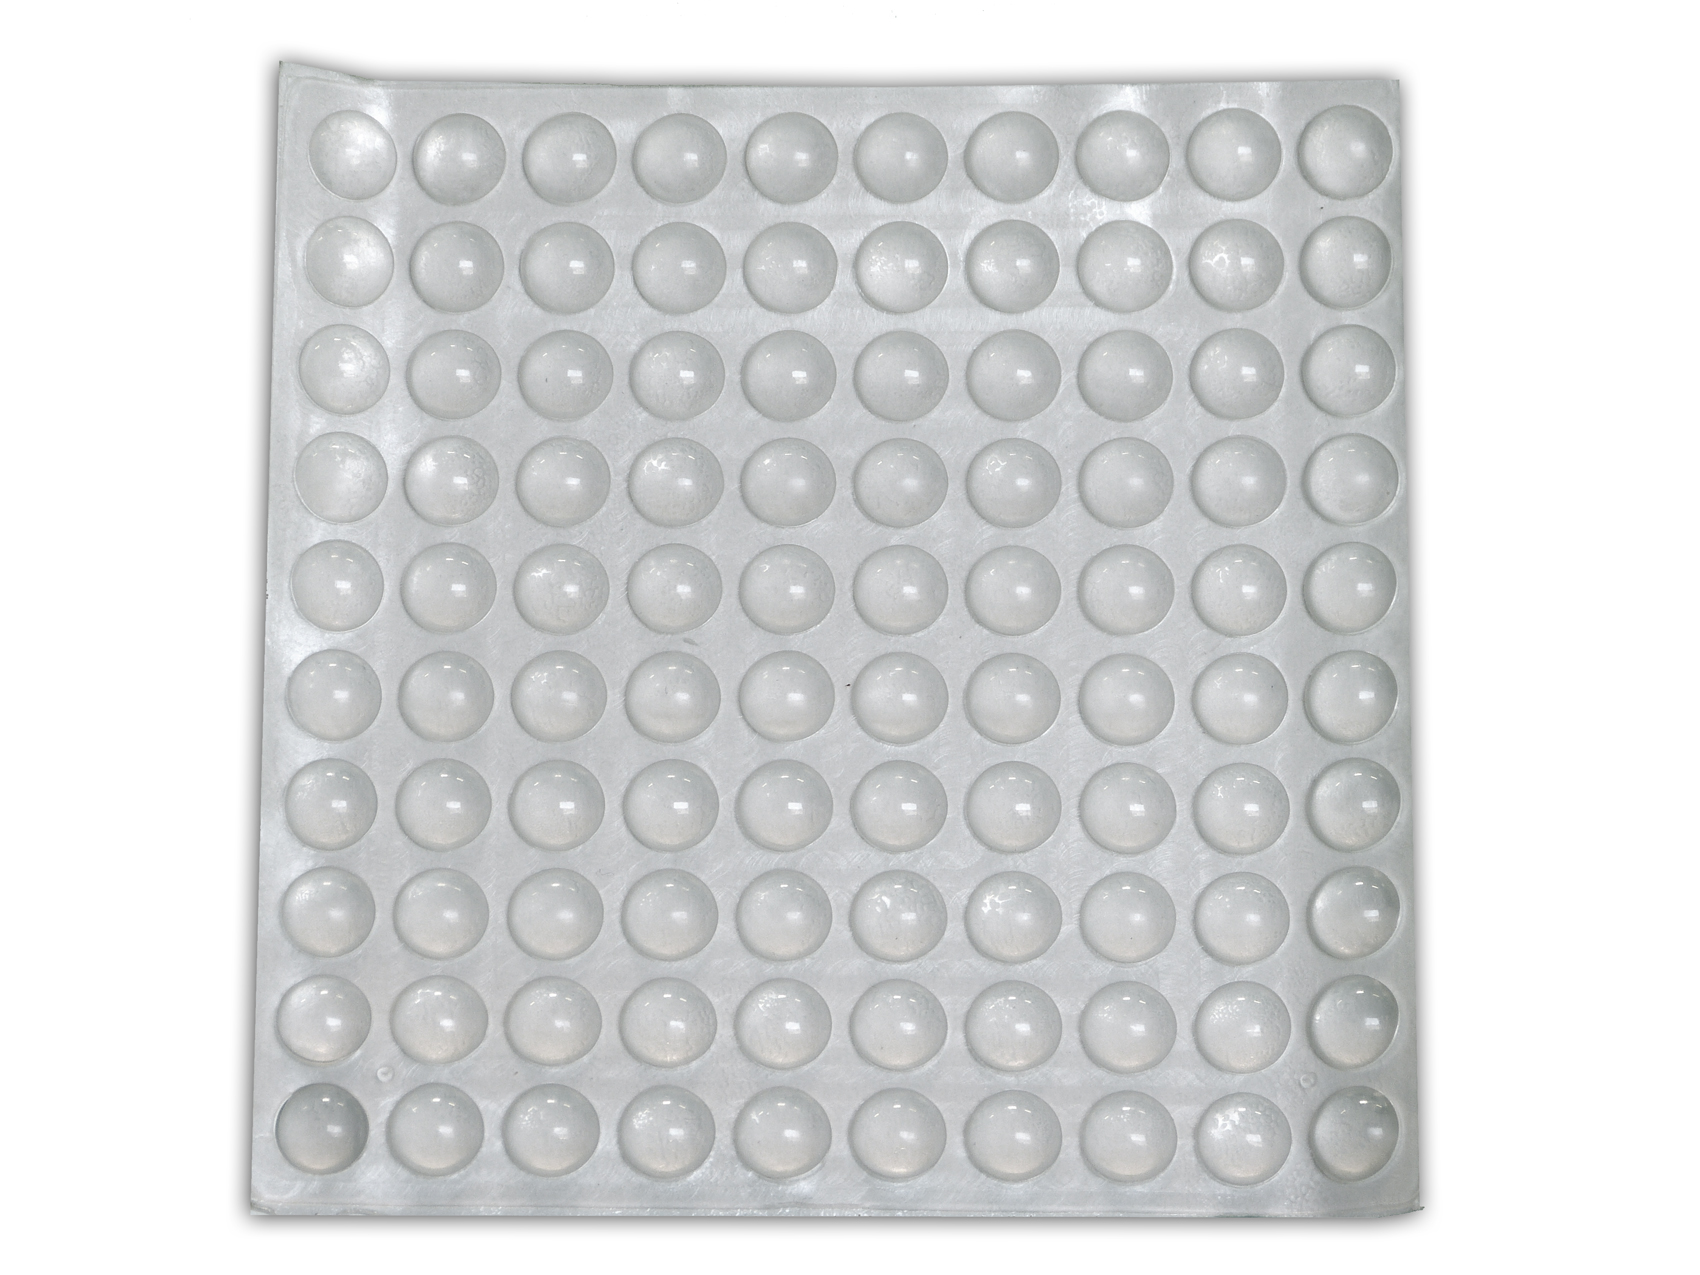 New 100 3 8 silicon rubber kitchen cabinet door pad Kitchen cabinet door cushions